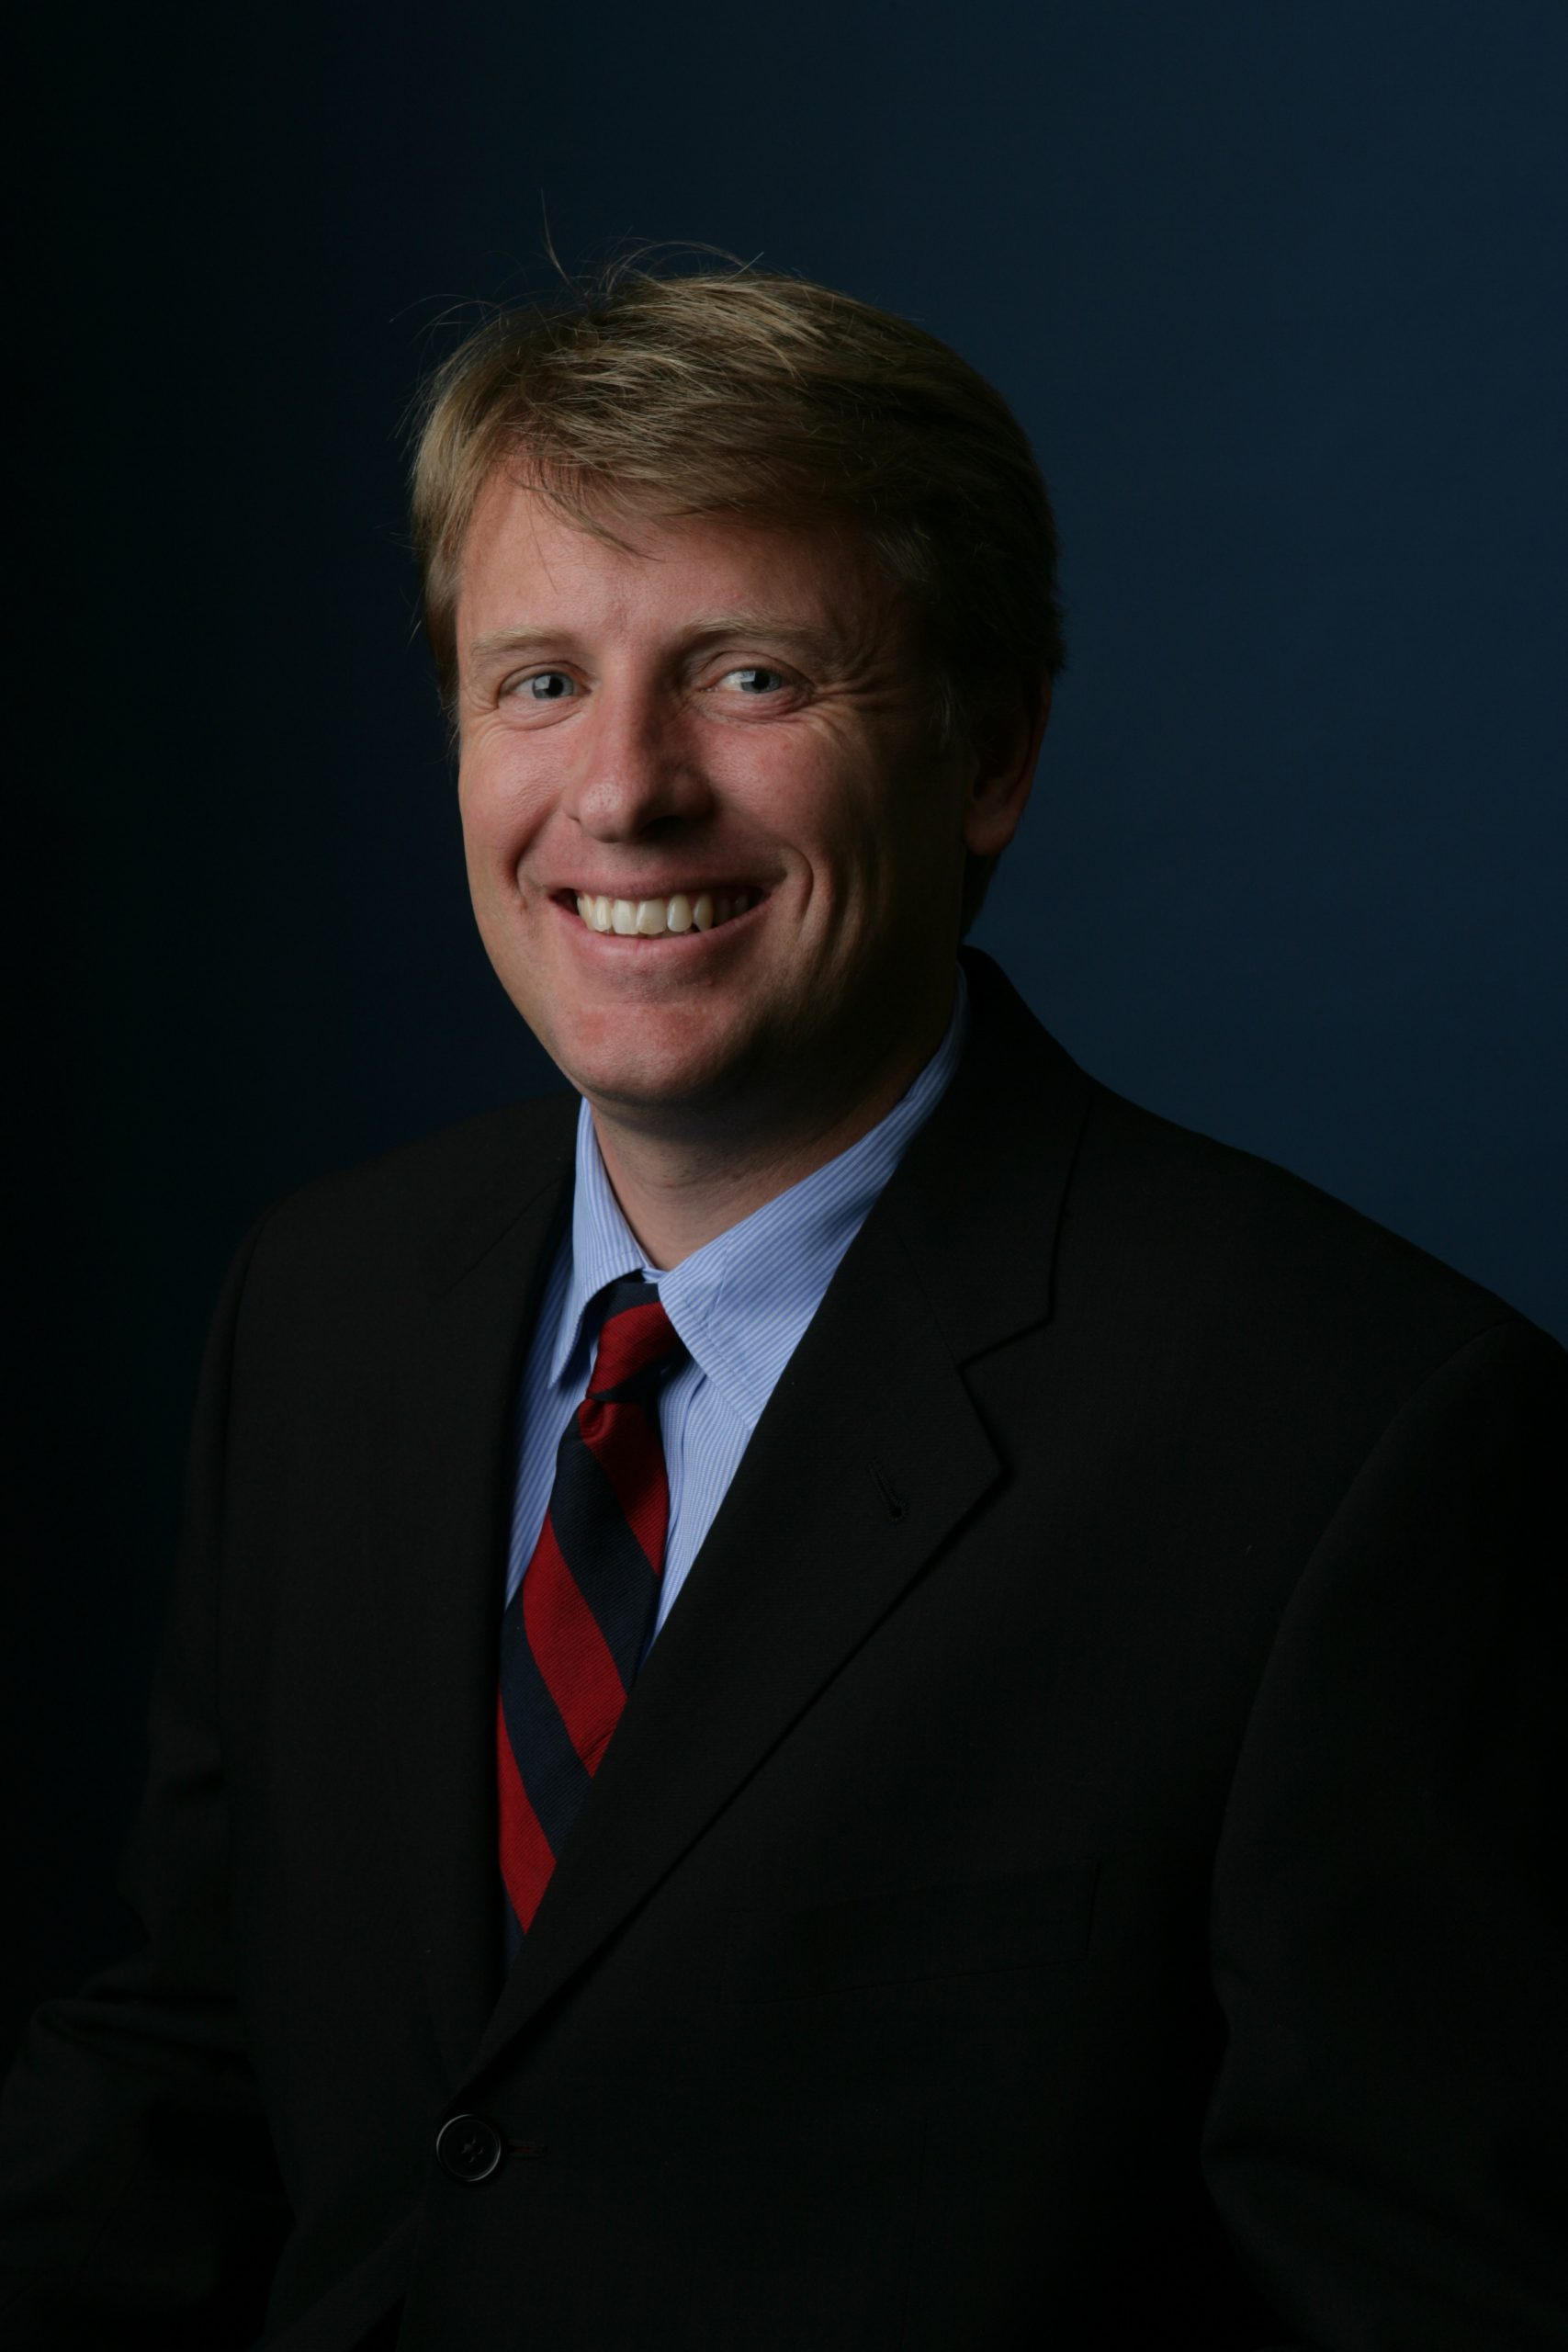 Taylor Randall, associate dean of academic affairs at the David Eccles School of Business, will replace Jack Brittain as the dean of the David Eccles School of Business on July 1, 2009.